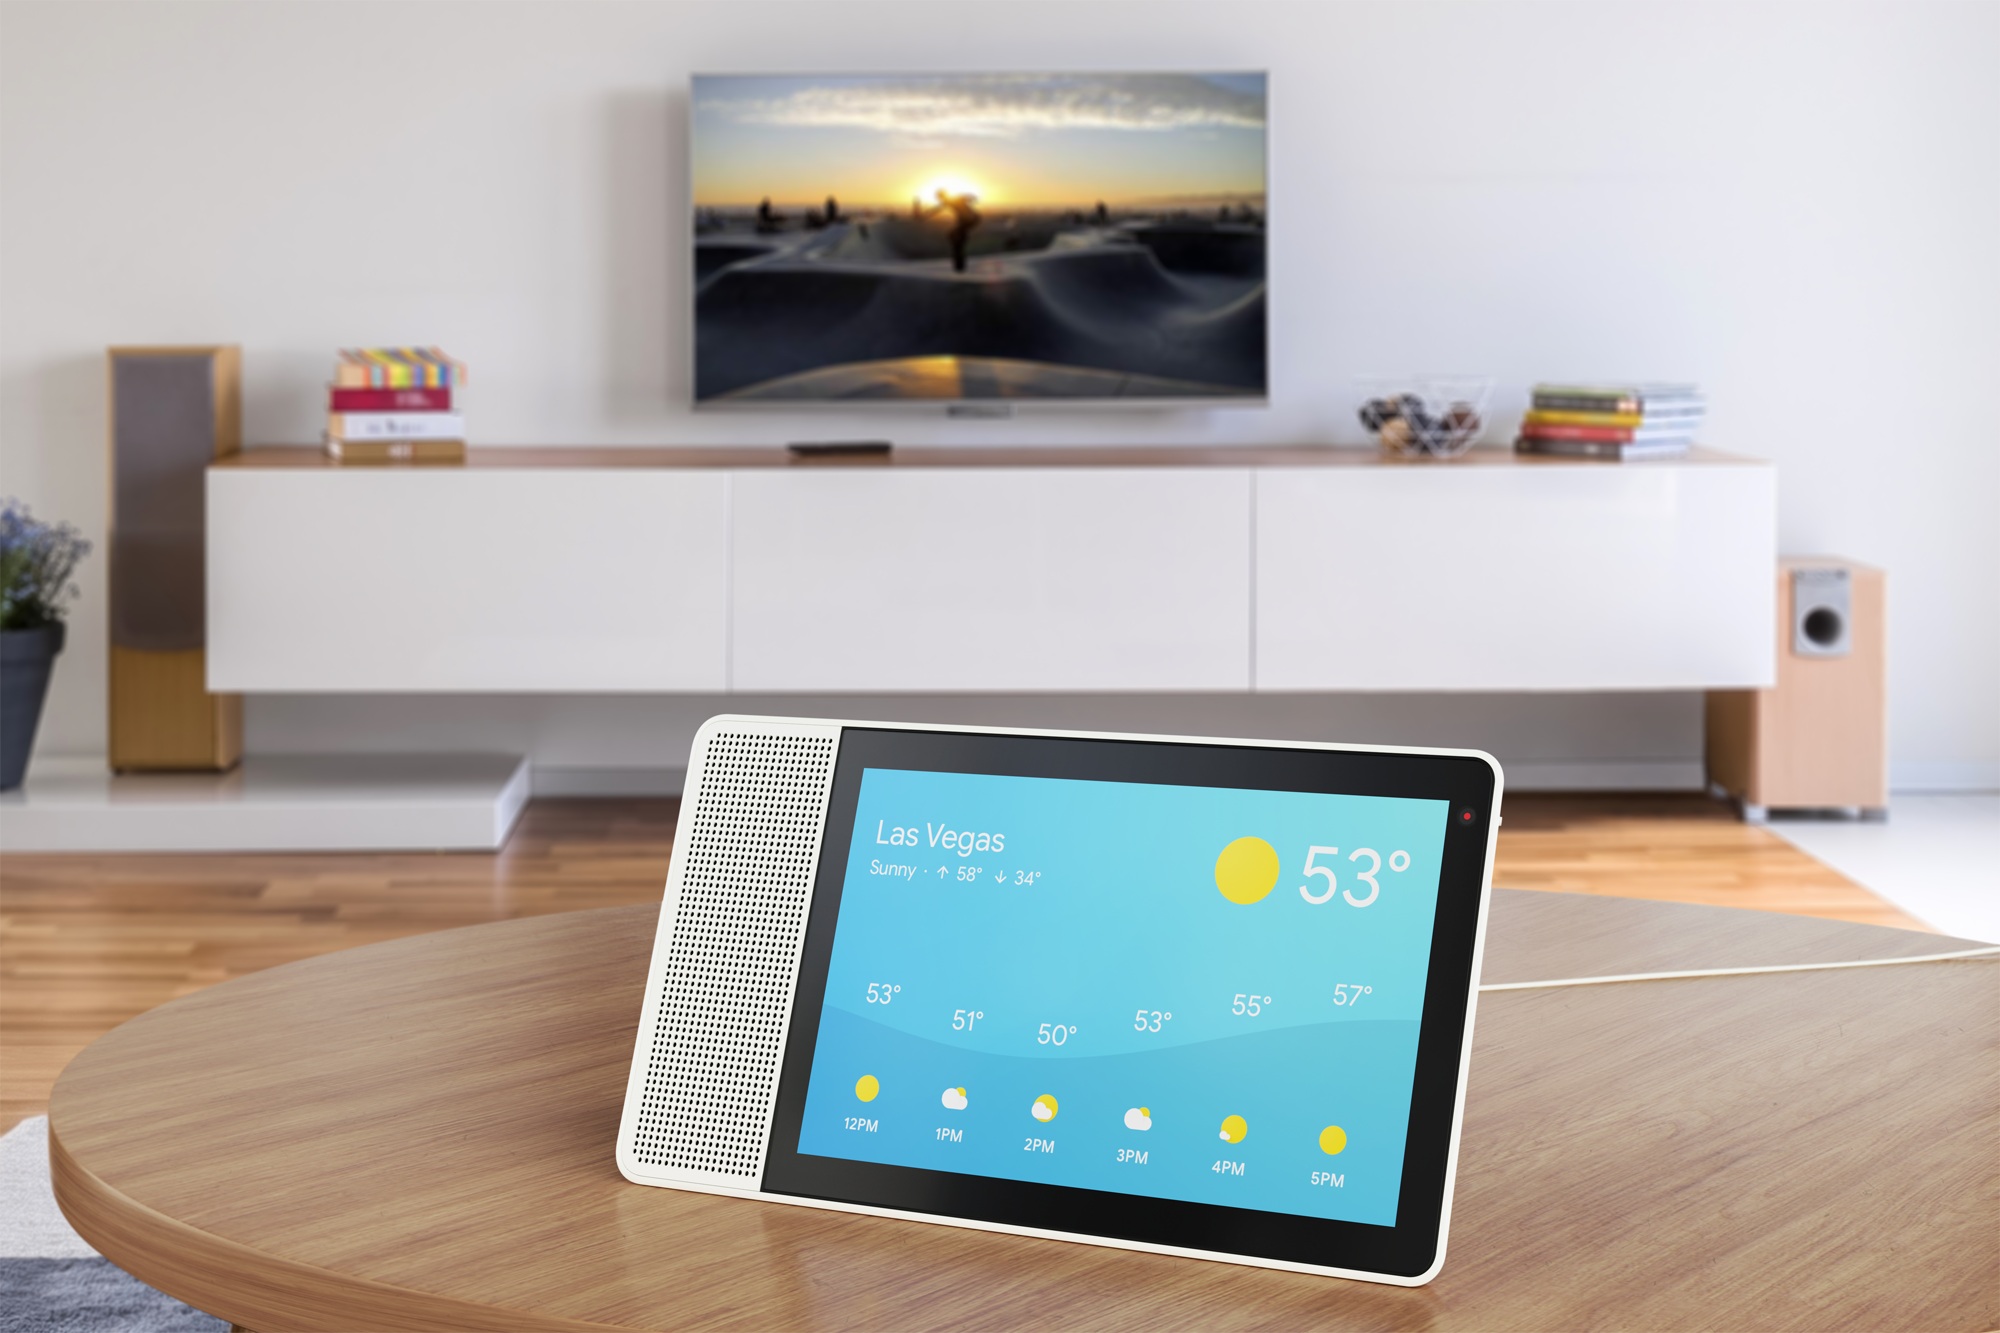 Google Hasn't Cracked The Smart Display's Complexity Problem